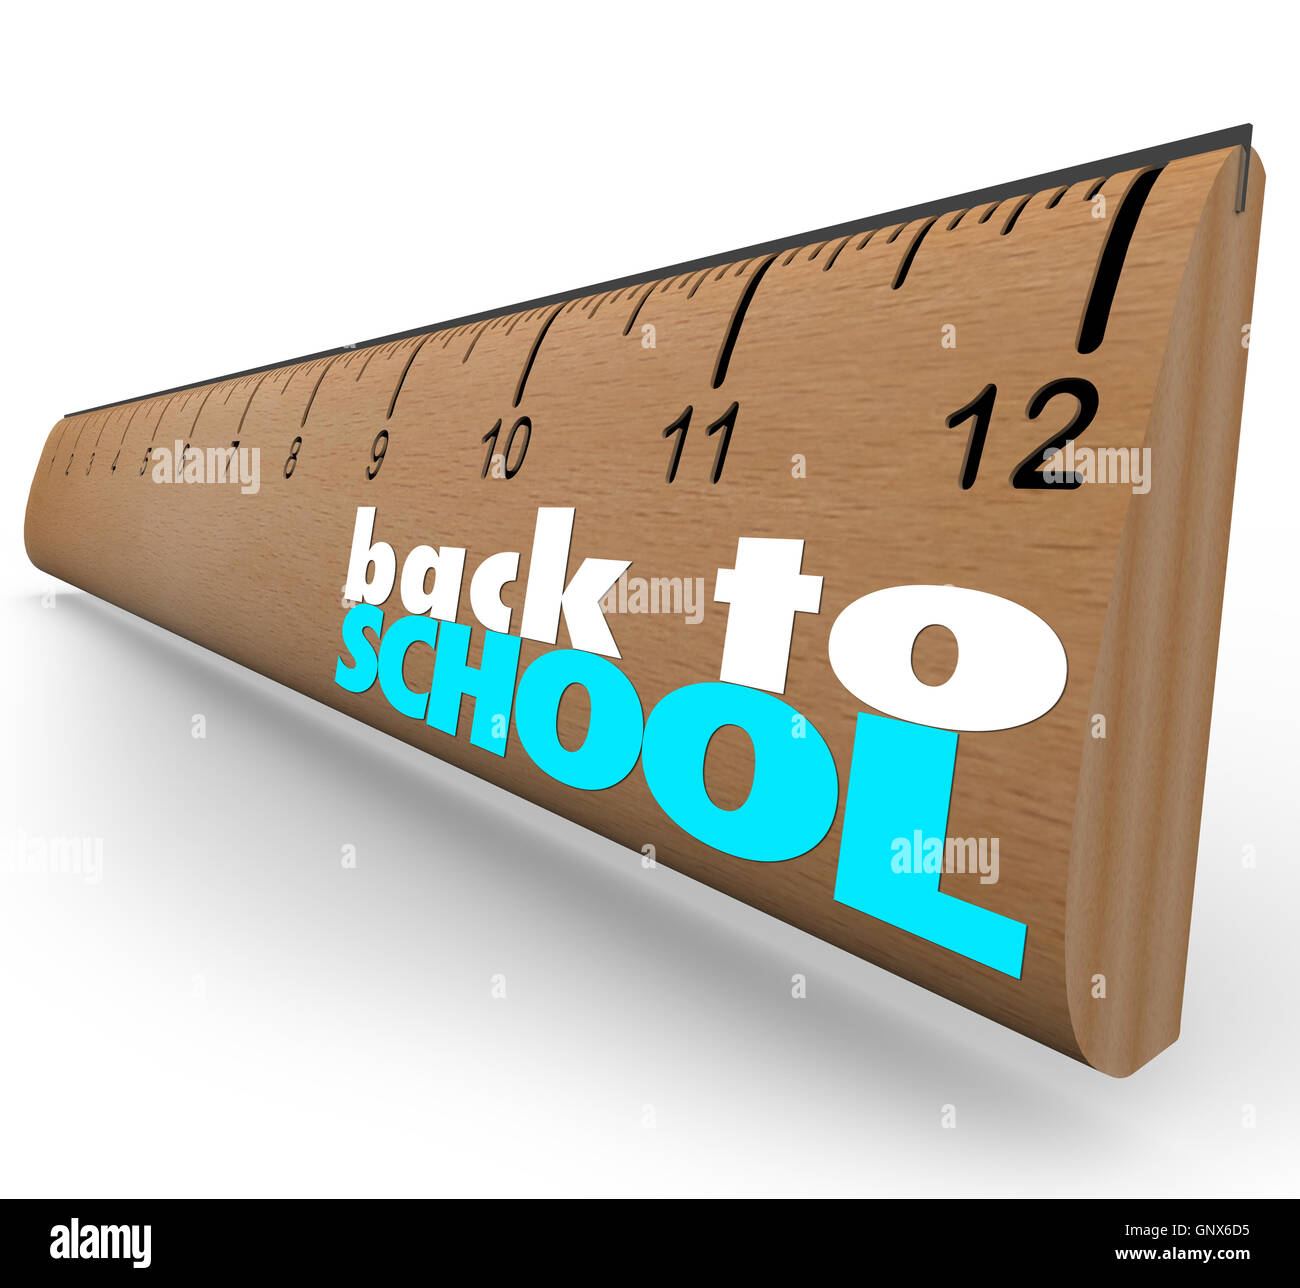 Back to School Words on Wooden Ruler Measurement - Stock Image